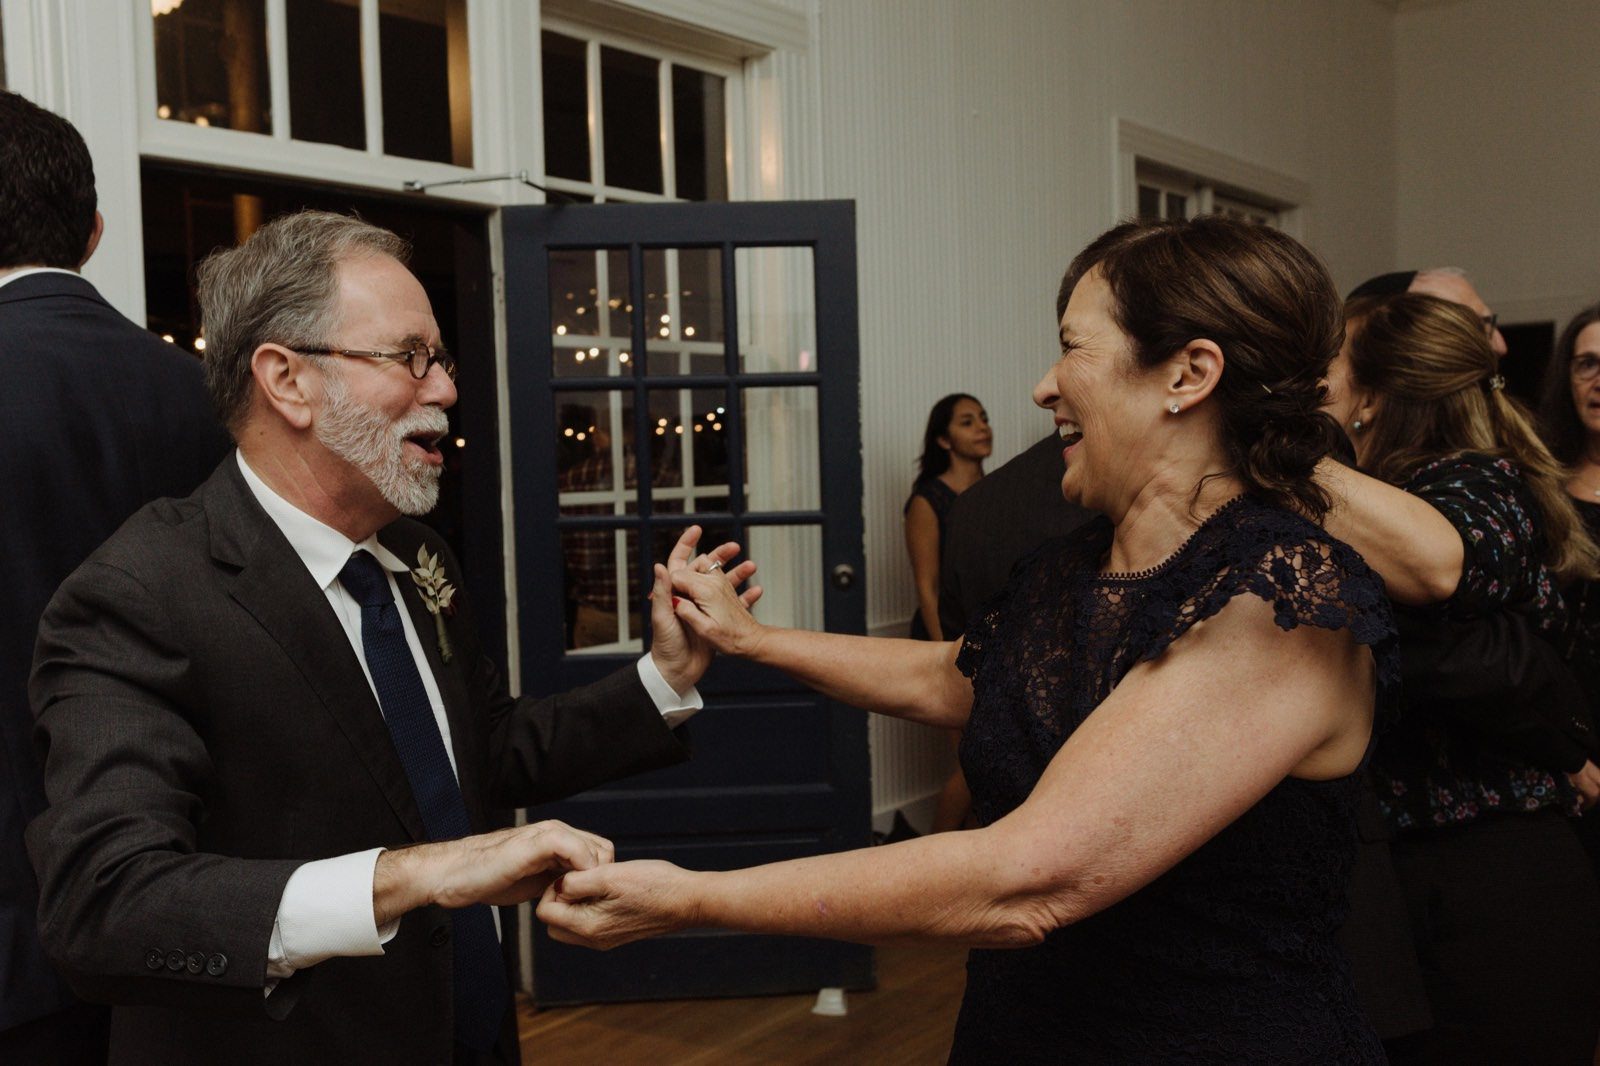 Parents of the bride joyfully ripping up the dance floor at the historic East Austin wedding venue